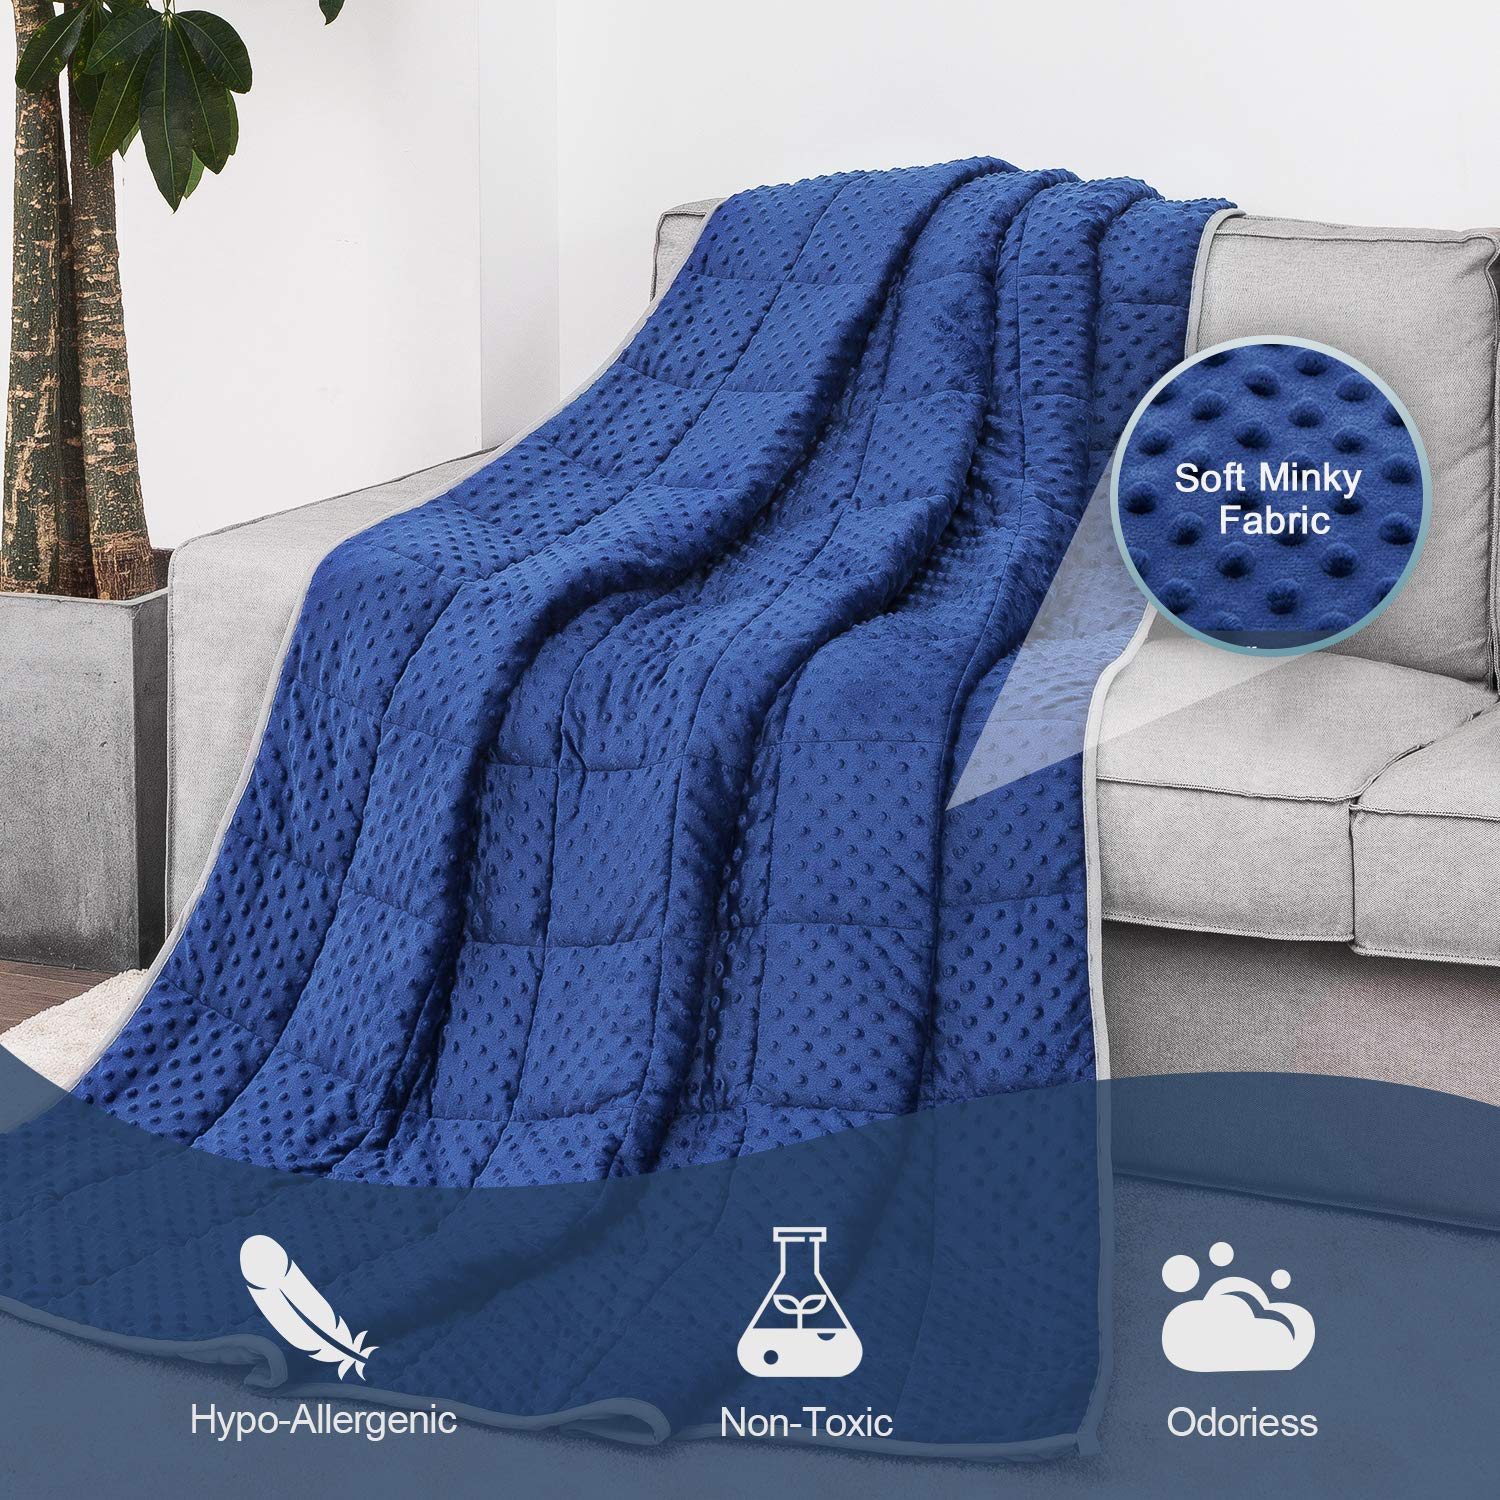 Angelhood Weighted Blanket 12 lbs, 48x72, Twin Full Size ,Minky Weighted Blanket for Kids Adult Warm Luxury,Heavy Weighted Blanket with Premium Glass Beads,Blue-Gray